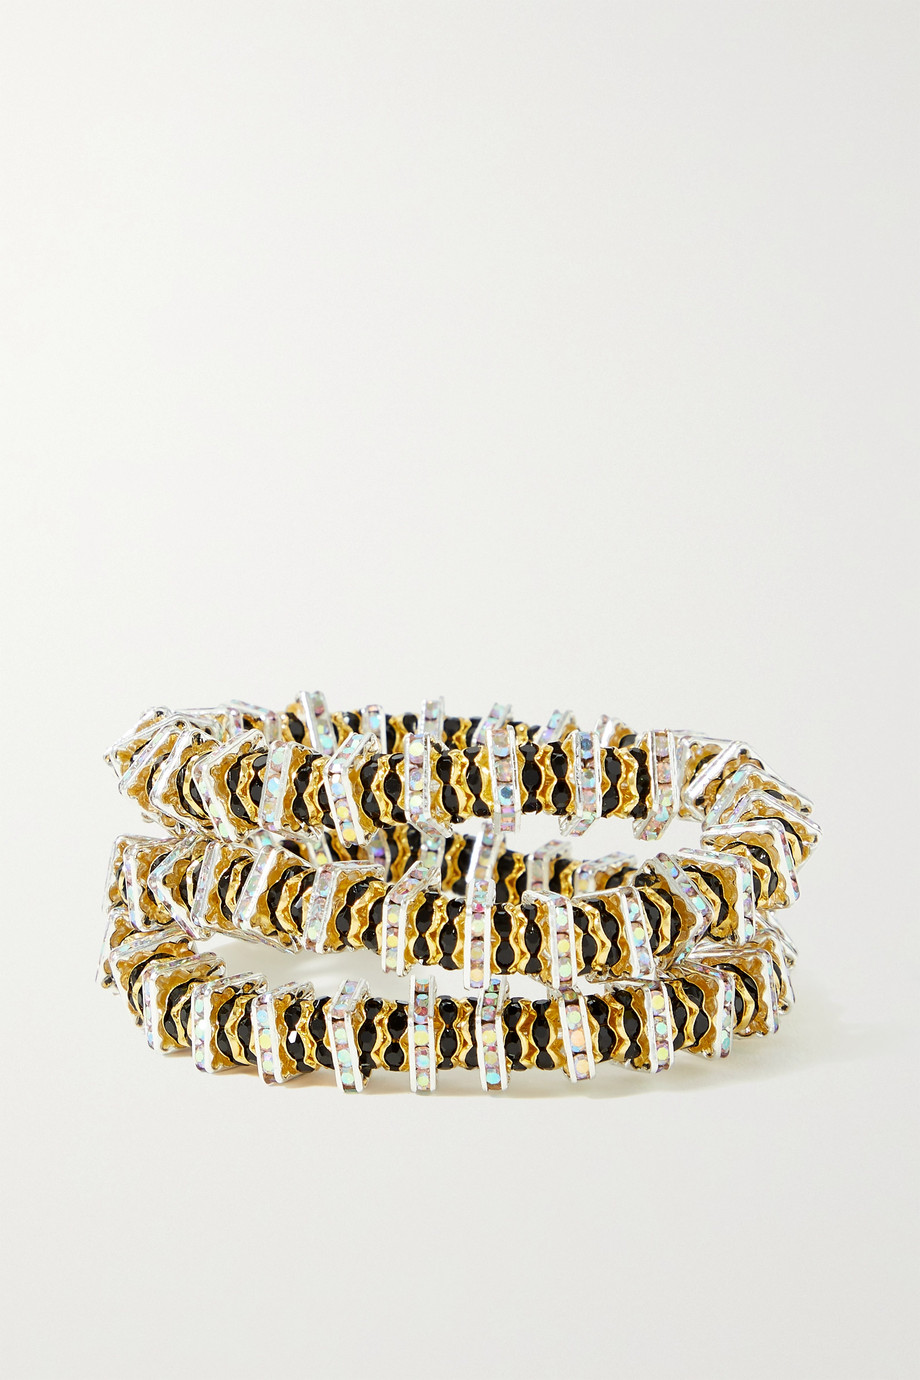 PEARL OCTOPUSS.Y Rattlesnake gold-plated crystal bracelet